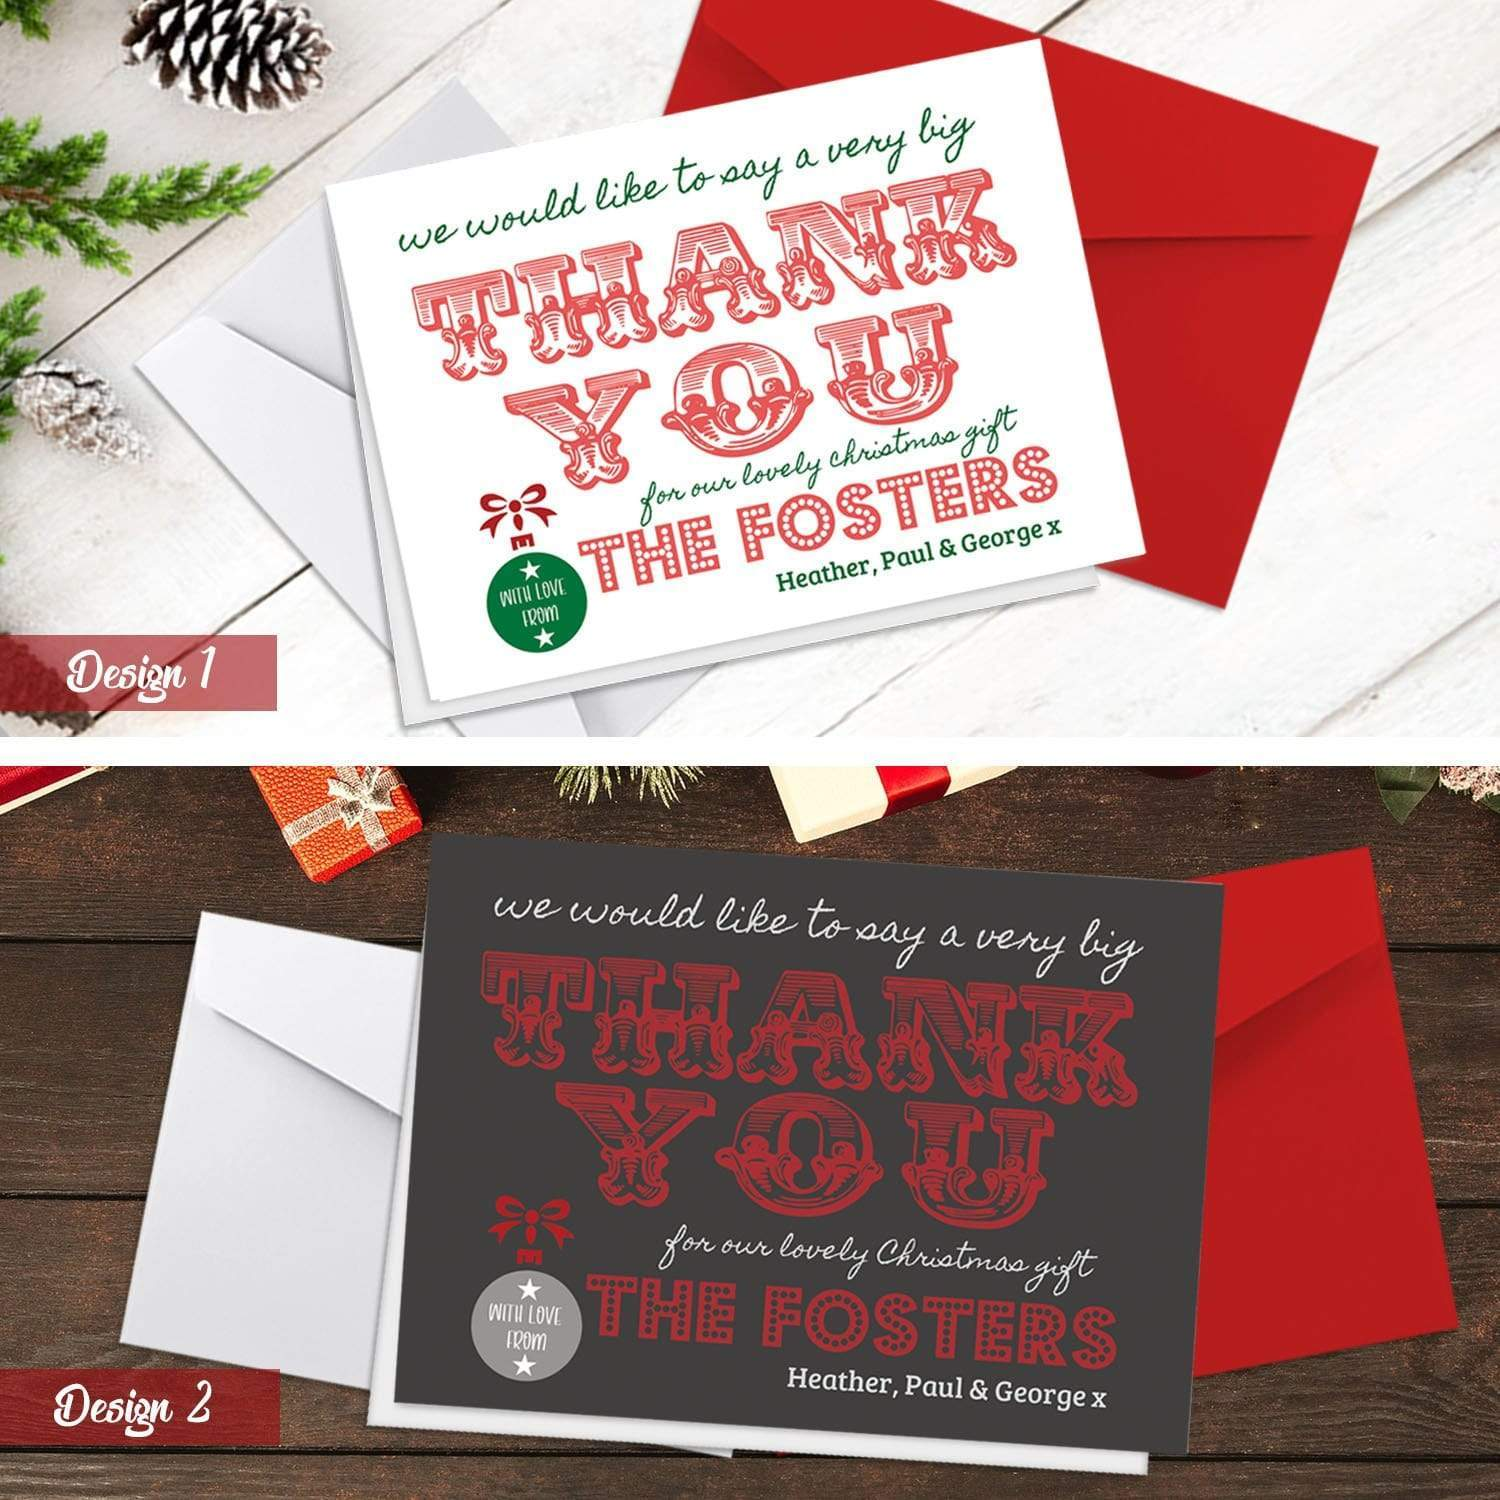 Christmas Thank You Cards.Personalised A6 Folded Christmas Thank You Cards With Envelopes